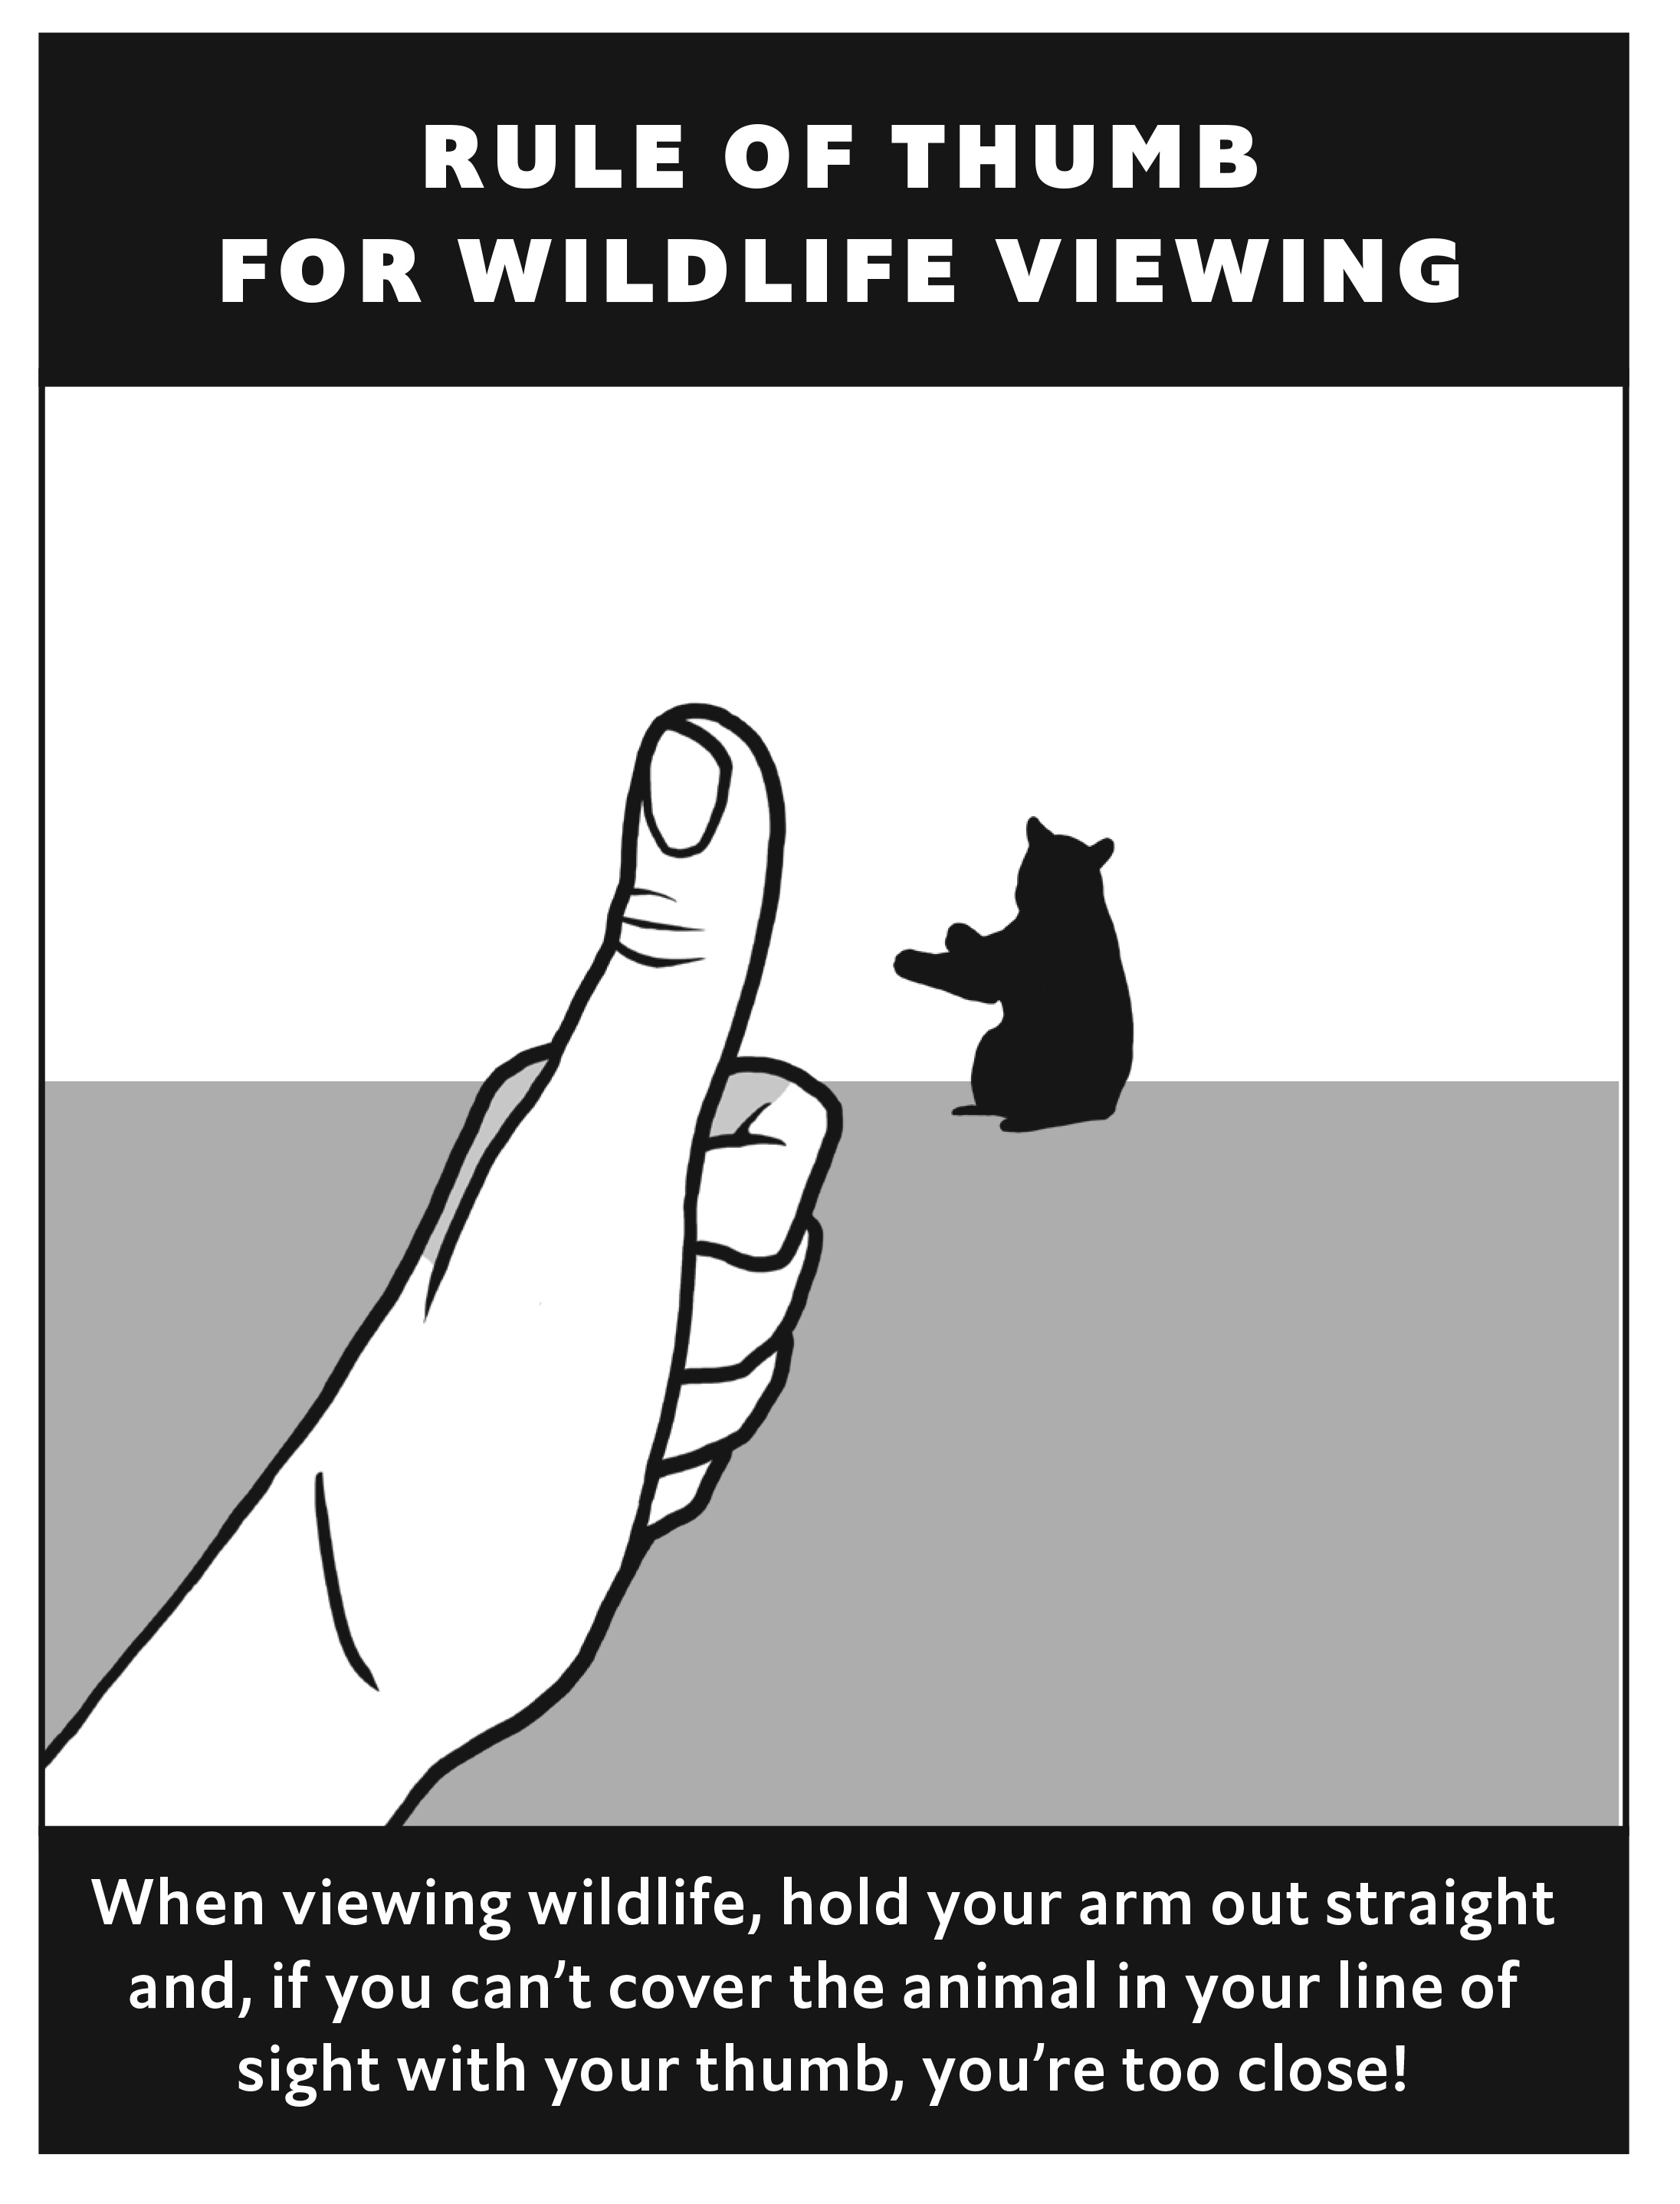 This rule of thumb can help you stay aware of how close you are to wildlife when visiting parks. Illustration courtesy of Emma DuFort, Great Smoky Mountains Association.